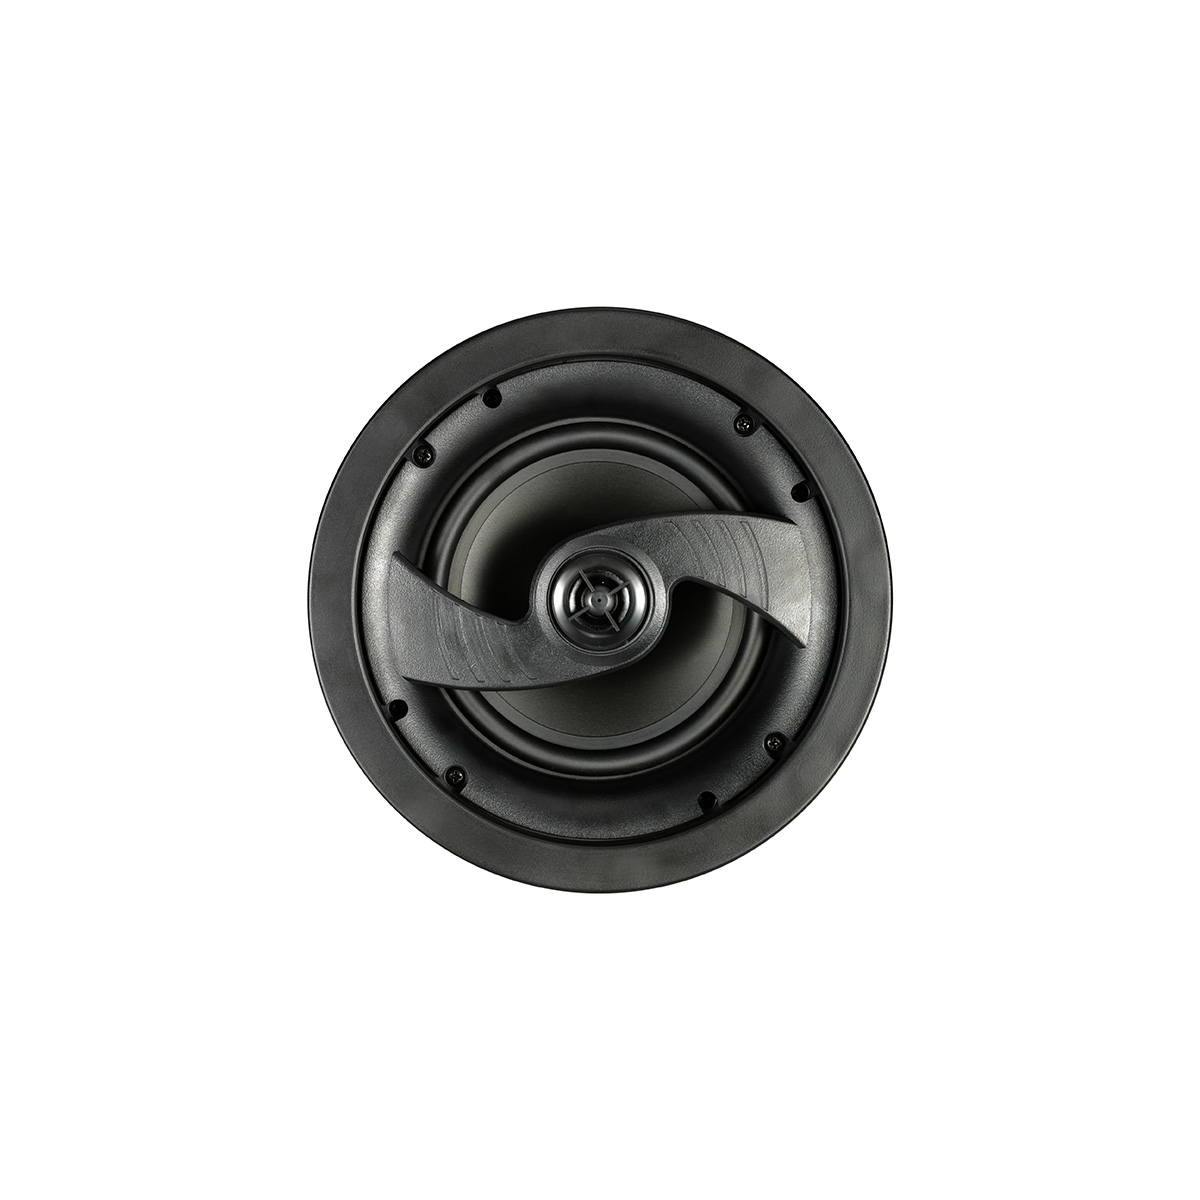 Wharfedale DC-6 ceiling speaker